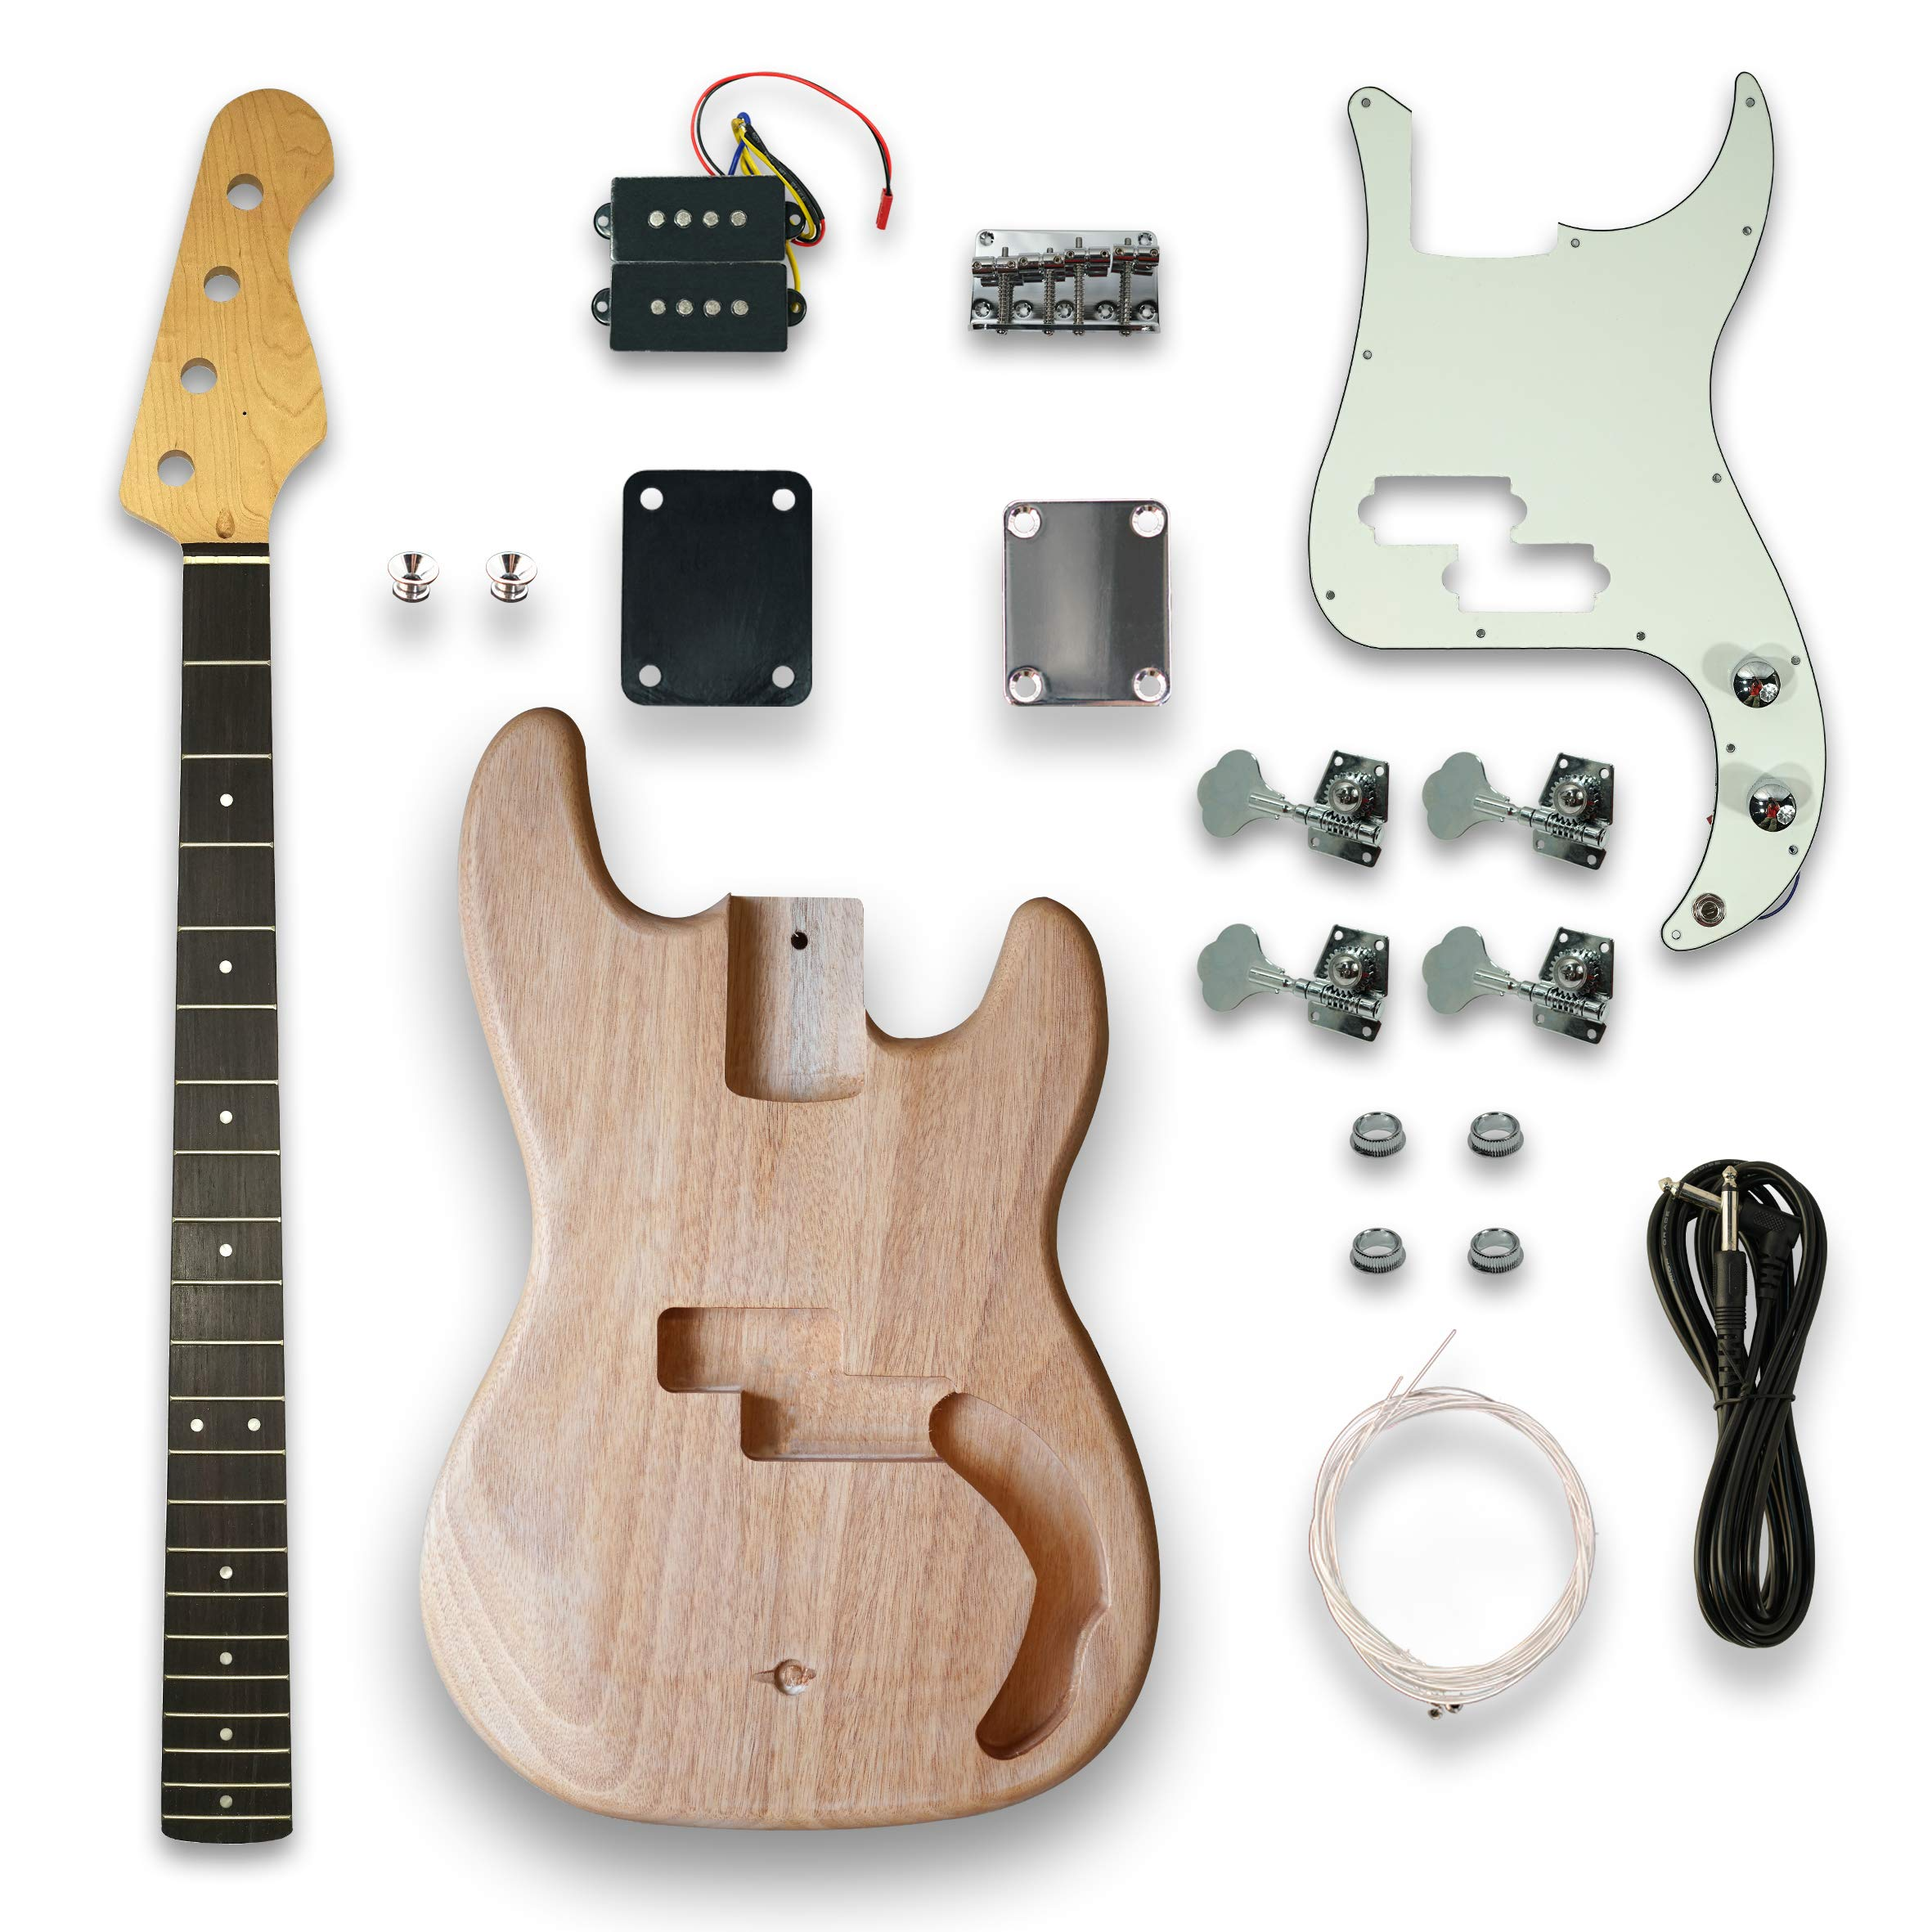 DIY Electric Guitar Kits For PB Style bass Guitar,Okoume Body by Unknown